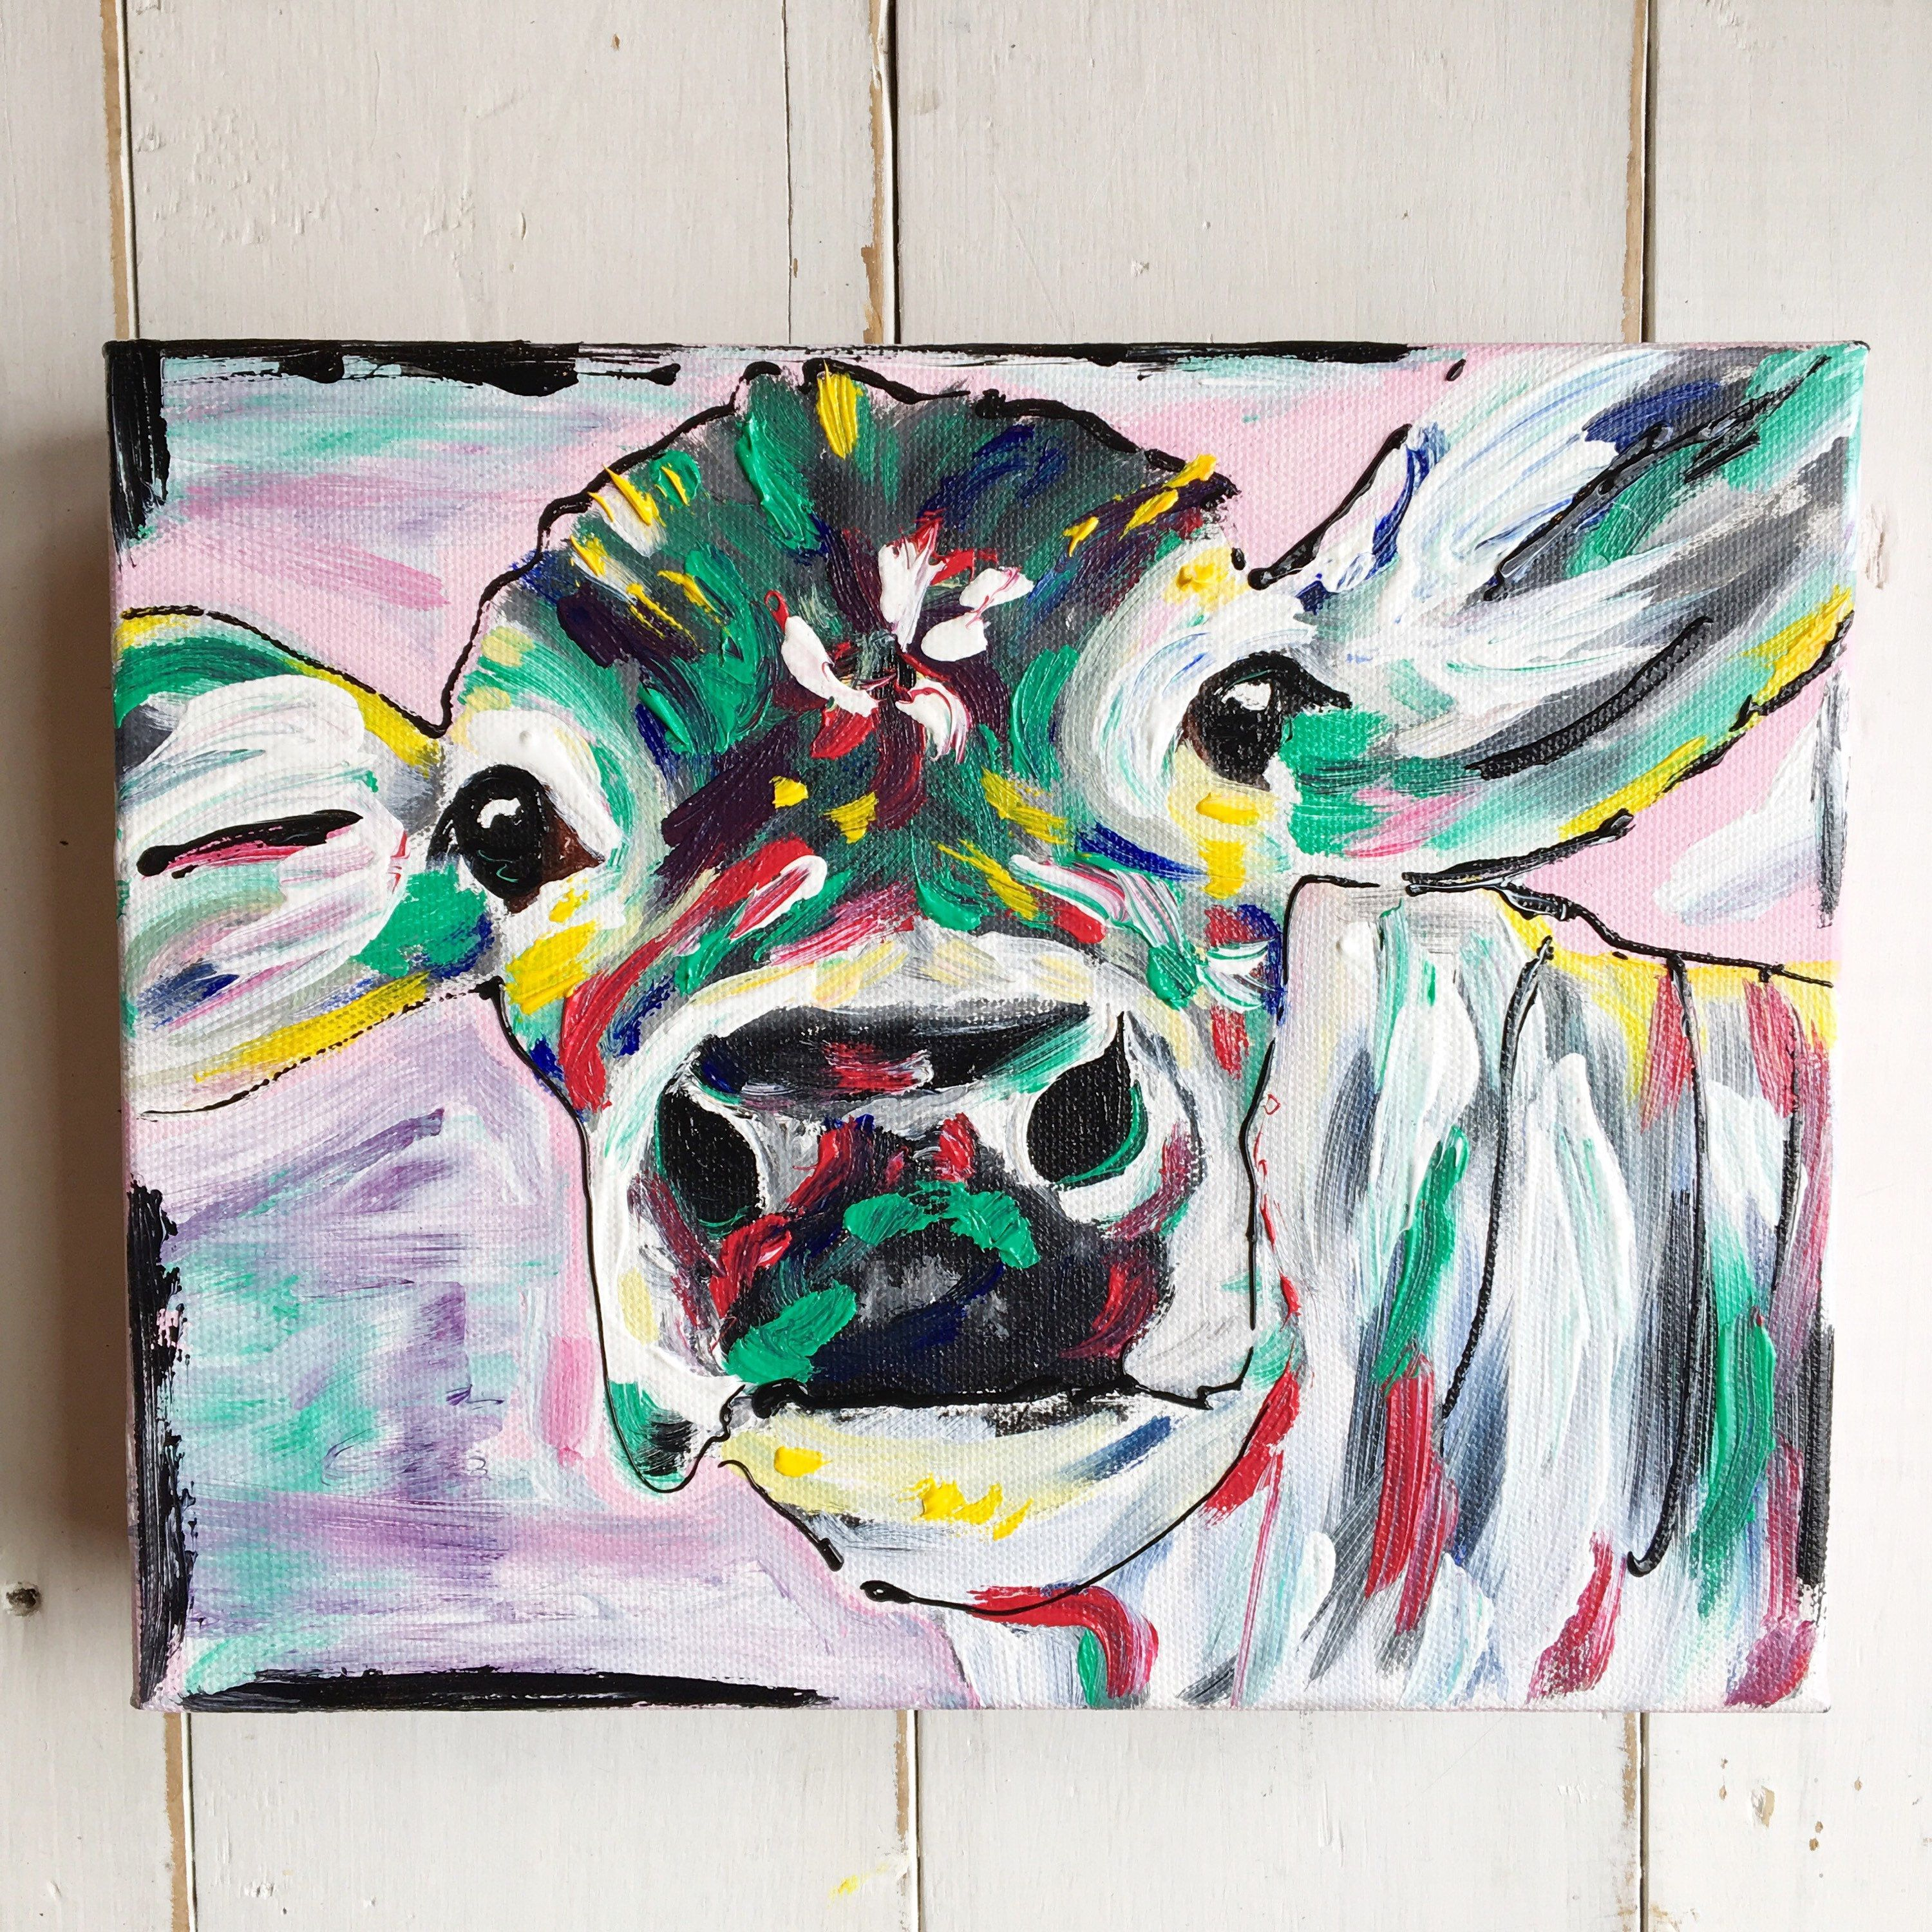 Colorful Abstract Cow On Stretched Canvas Oil Painting Cow Etsy In 2020 Cow Art Cow Wall Art Cow Painting